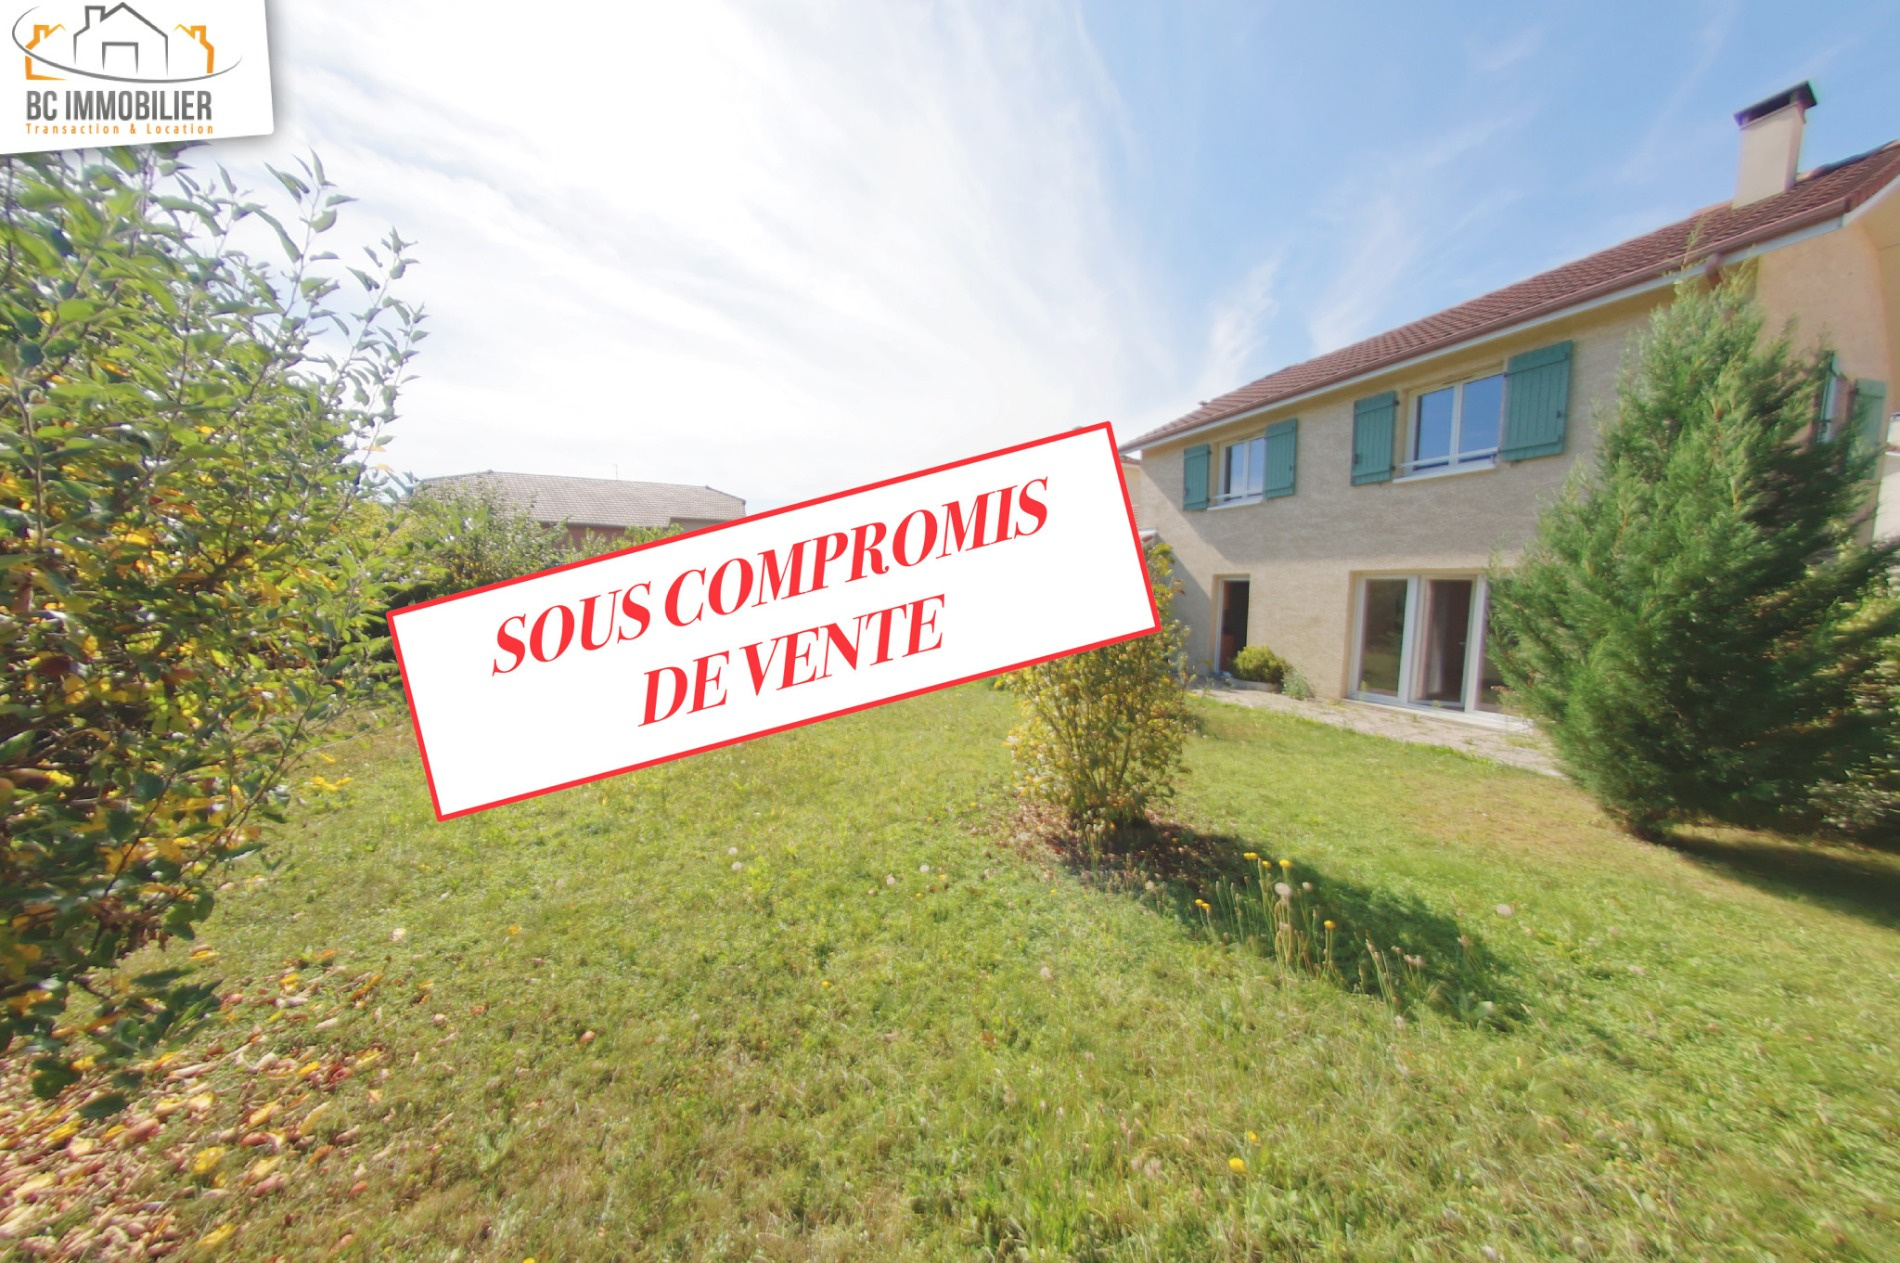 Vente saint genis pouilly maison individuelle 115m2 for Garage st genis pouilly